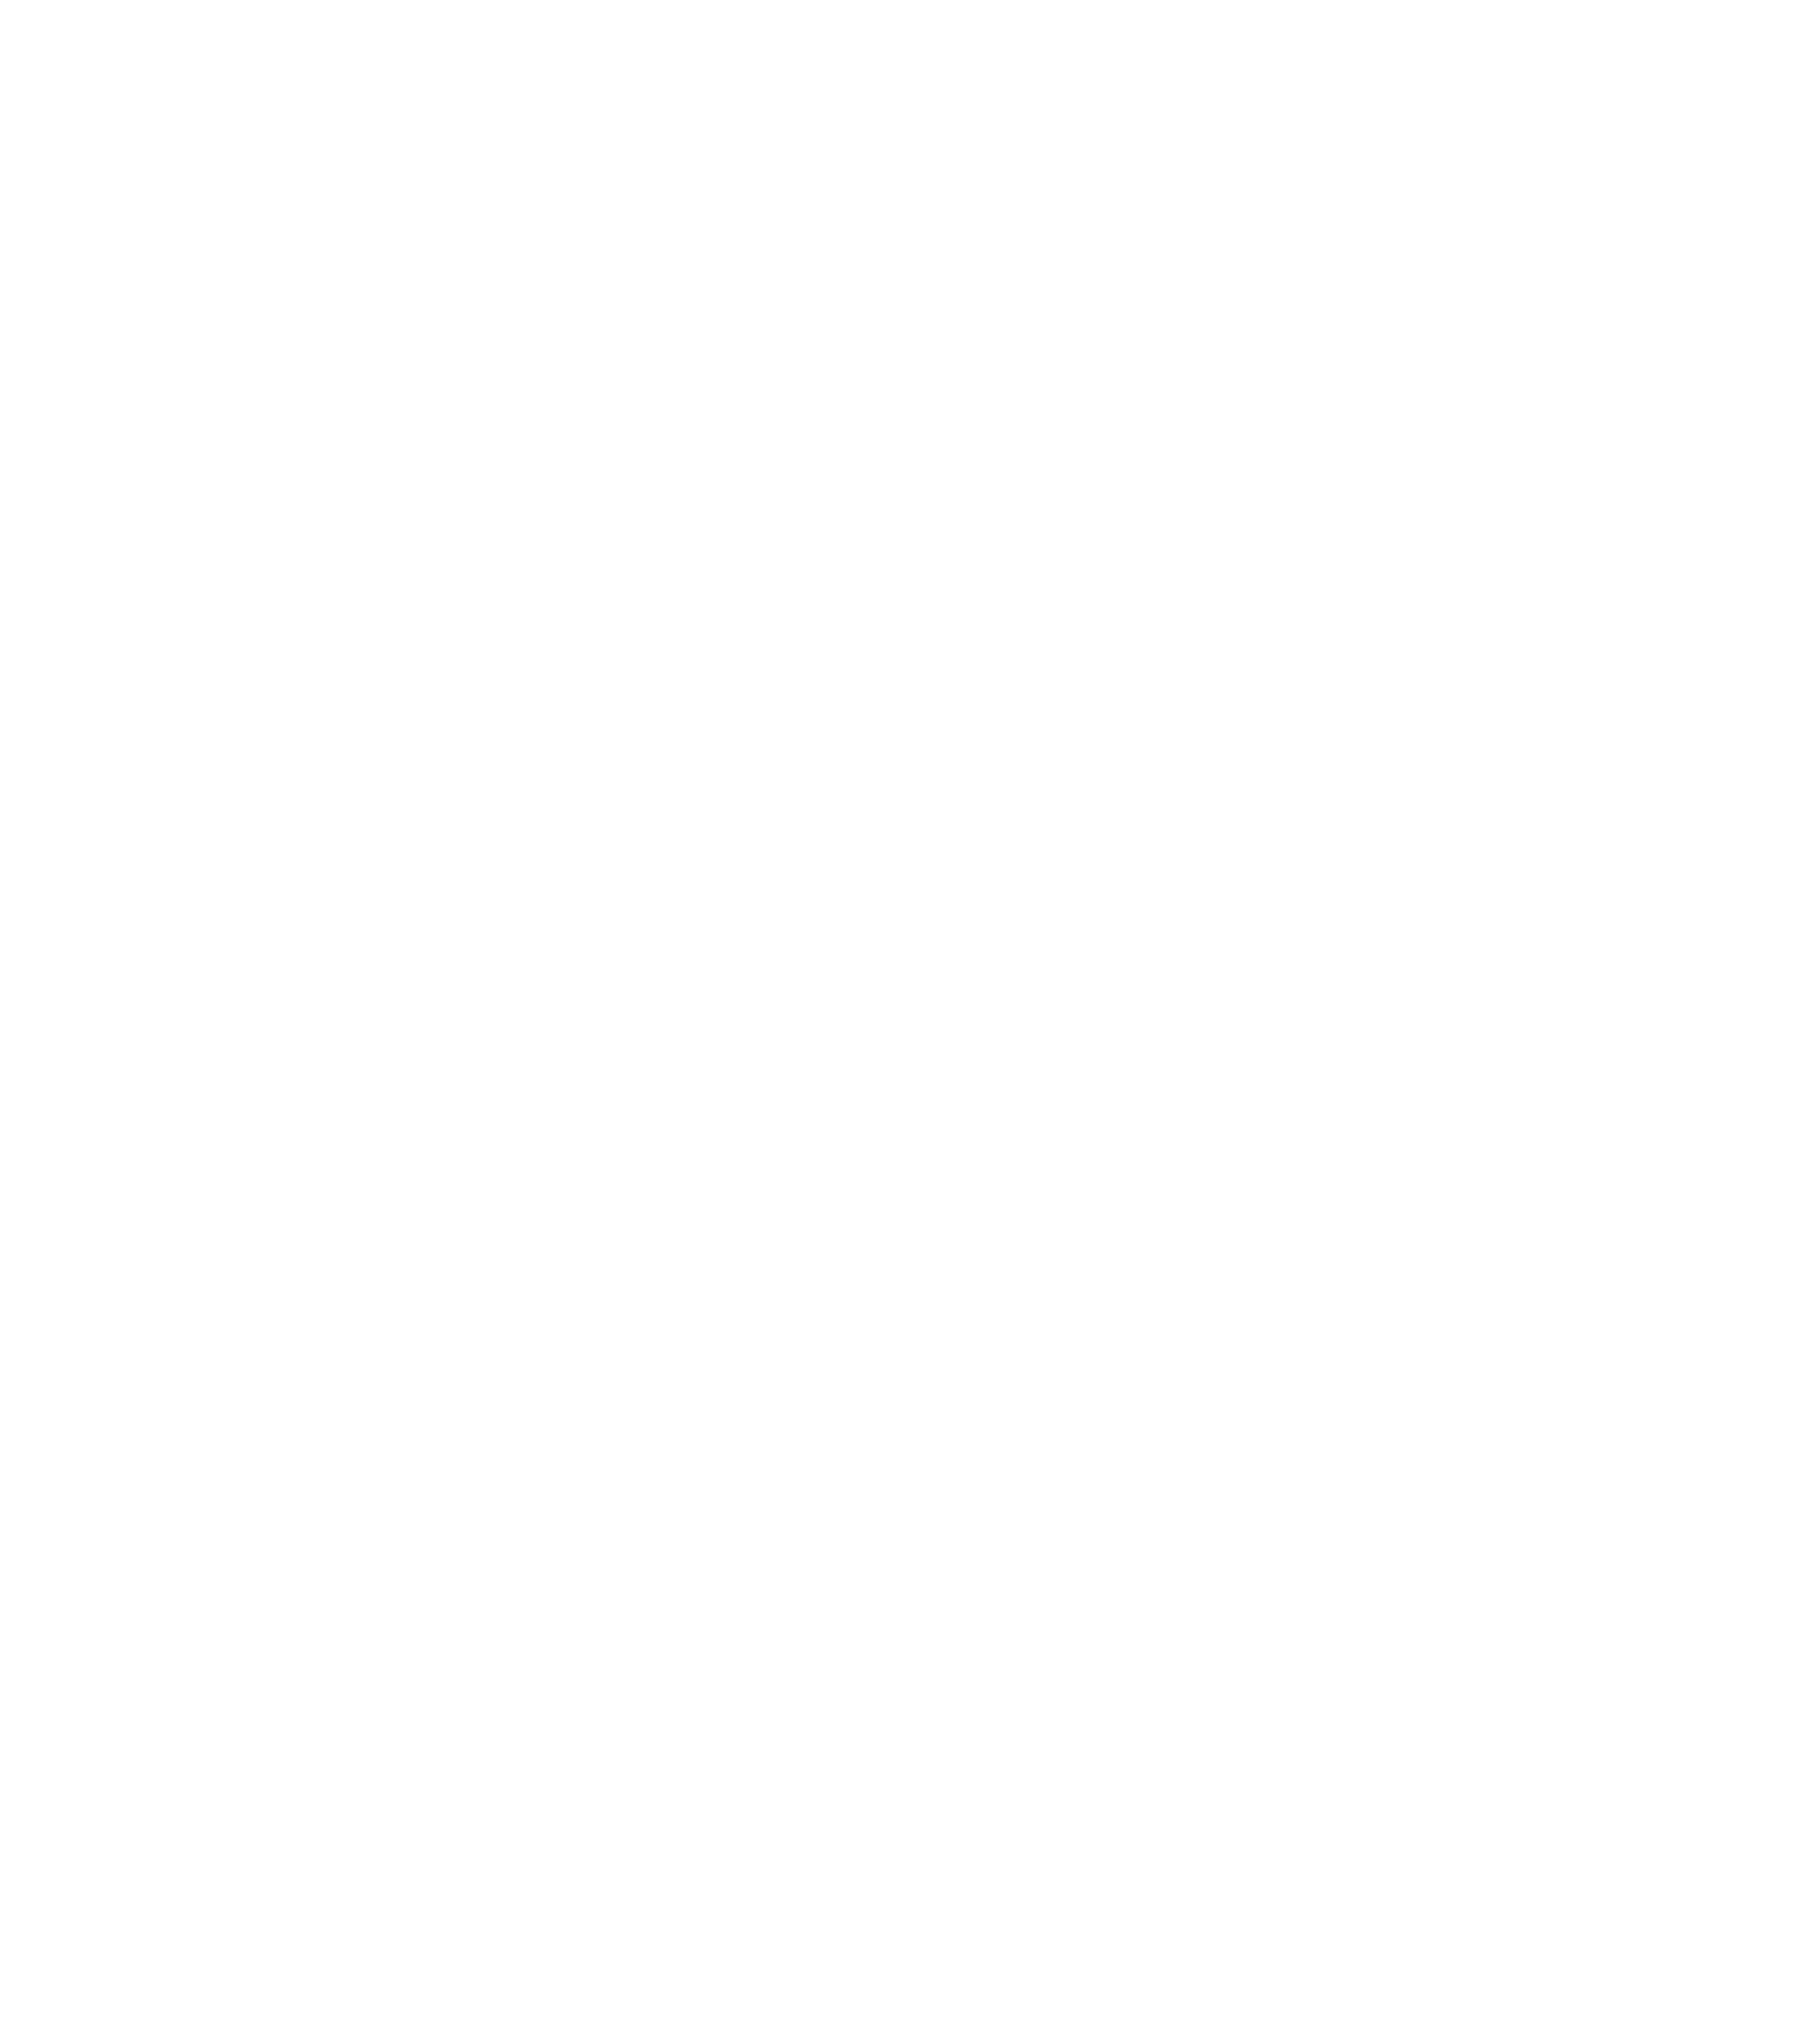 Snowflakes png high resolution. Clip art image gallery